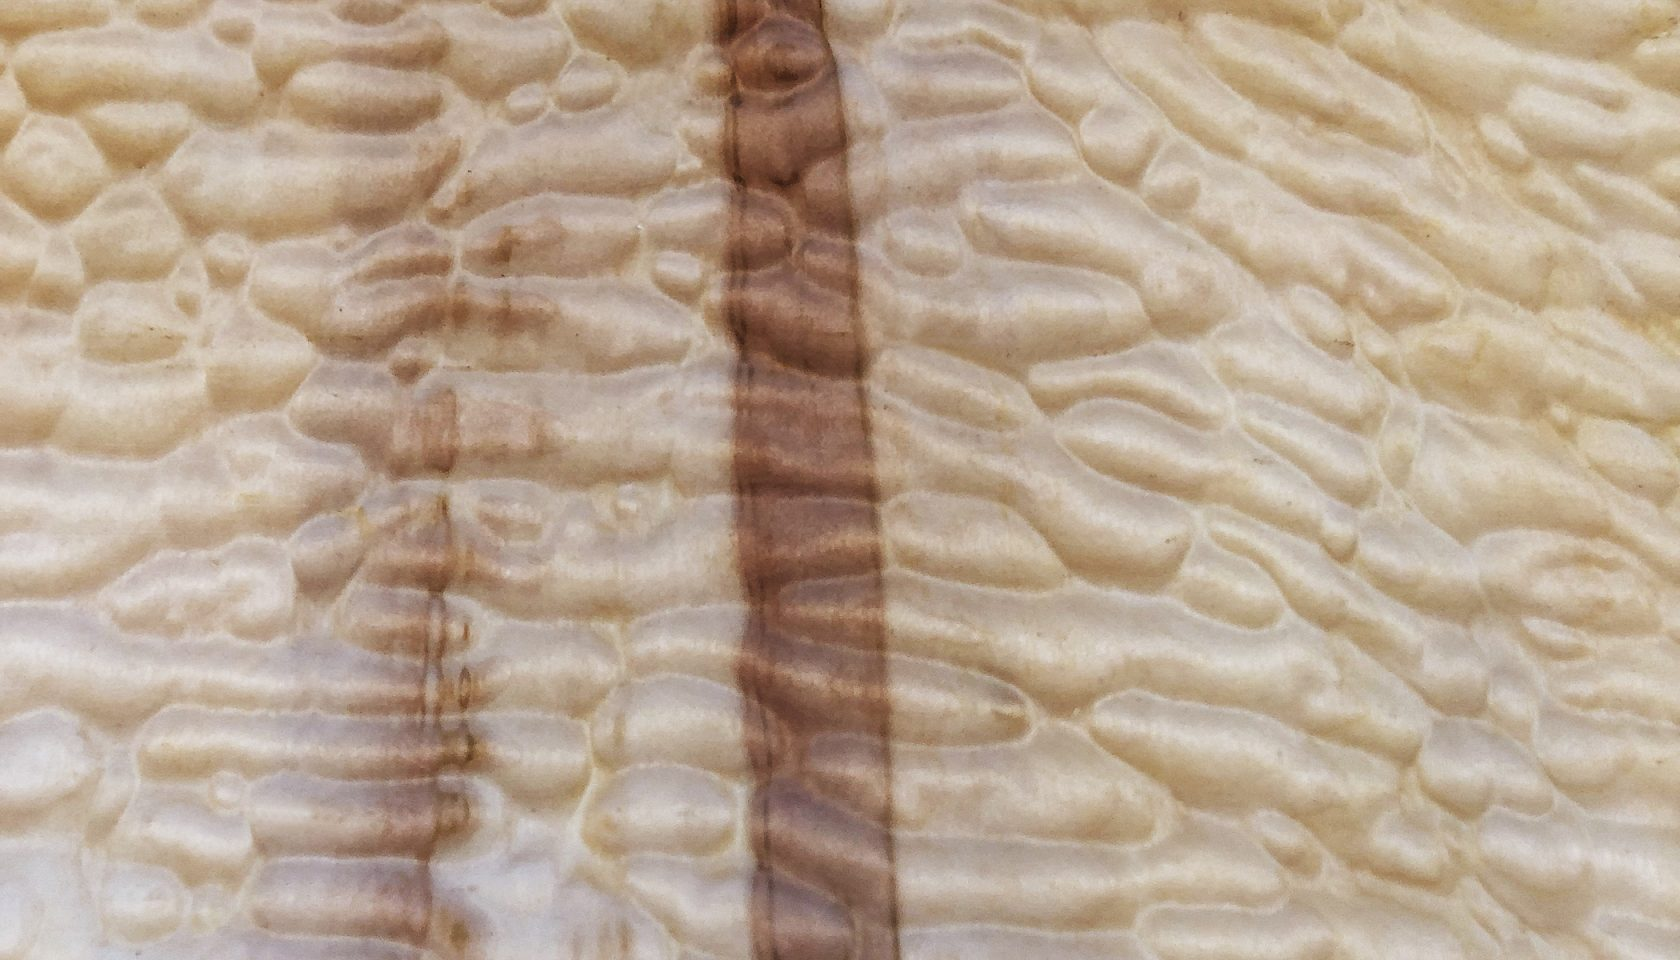 Brand new production of Quilted Maple available now